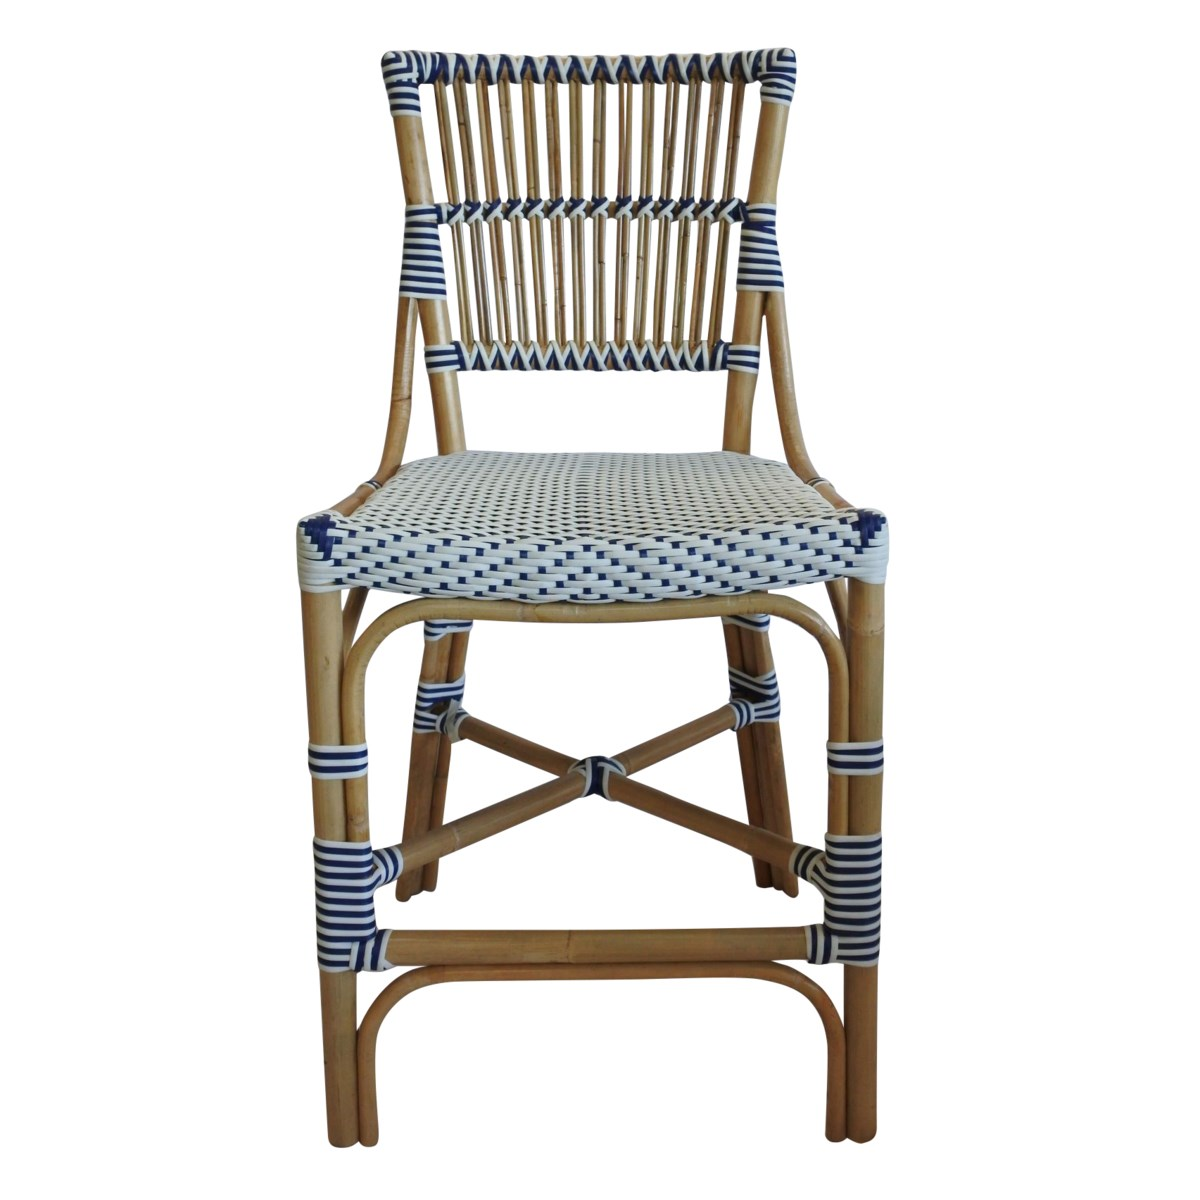 Madrid Counter Chair  Frame Color  - Natural  Woven Seat and Back  Color - White/Navy